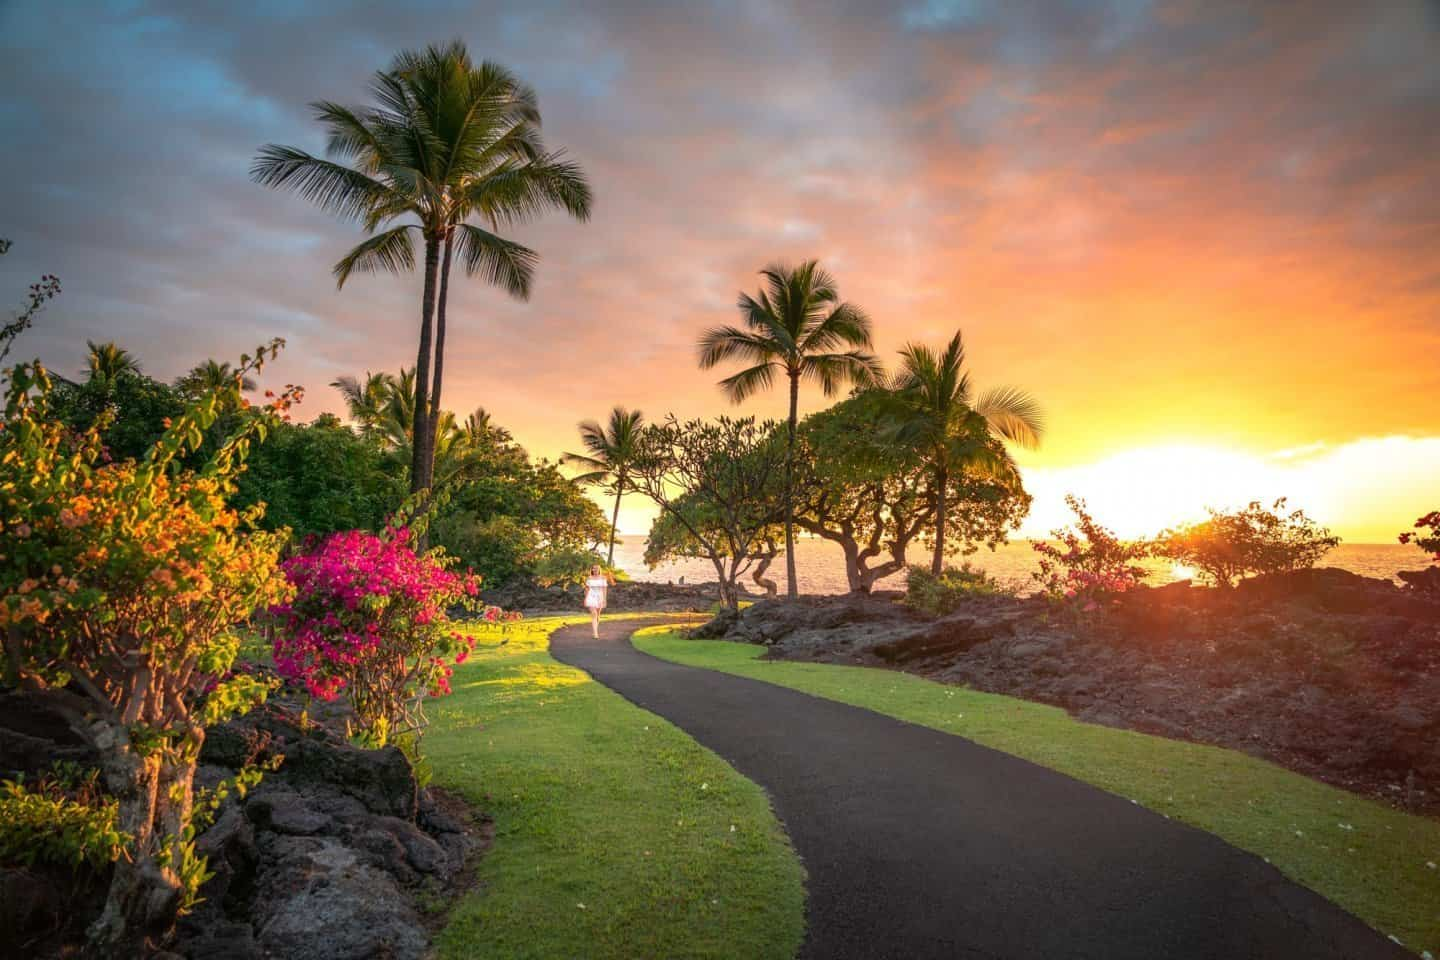 Big island photography: Enjoying a brilliant sunset from the Sheraton Kona.